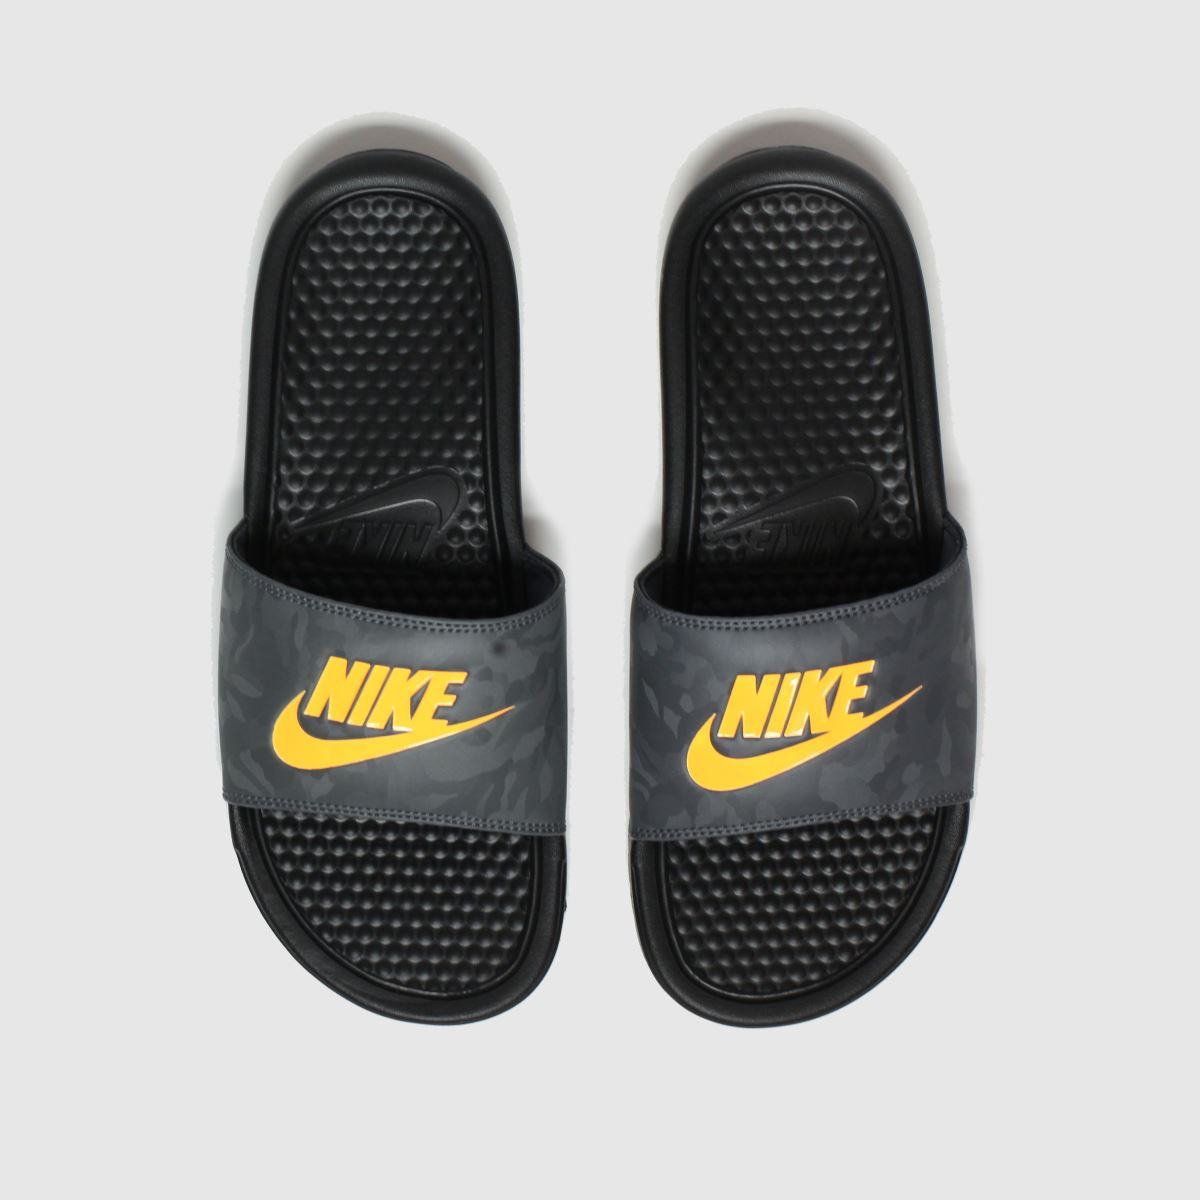 Nike Black & Orange Benassi Sandals